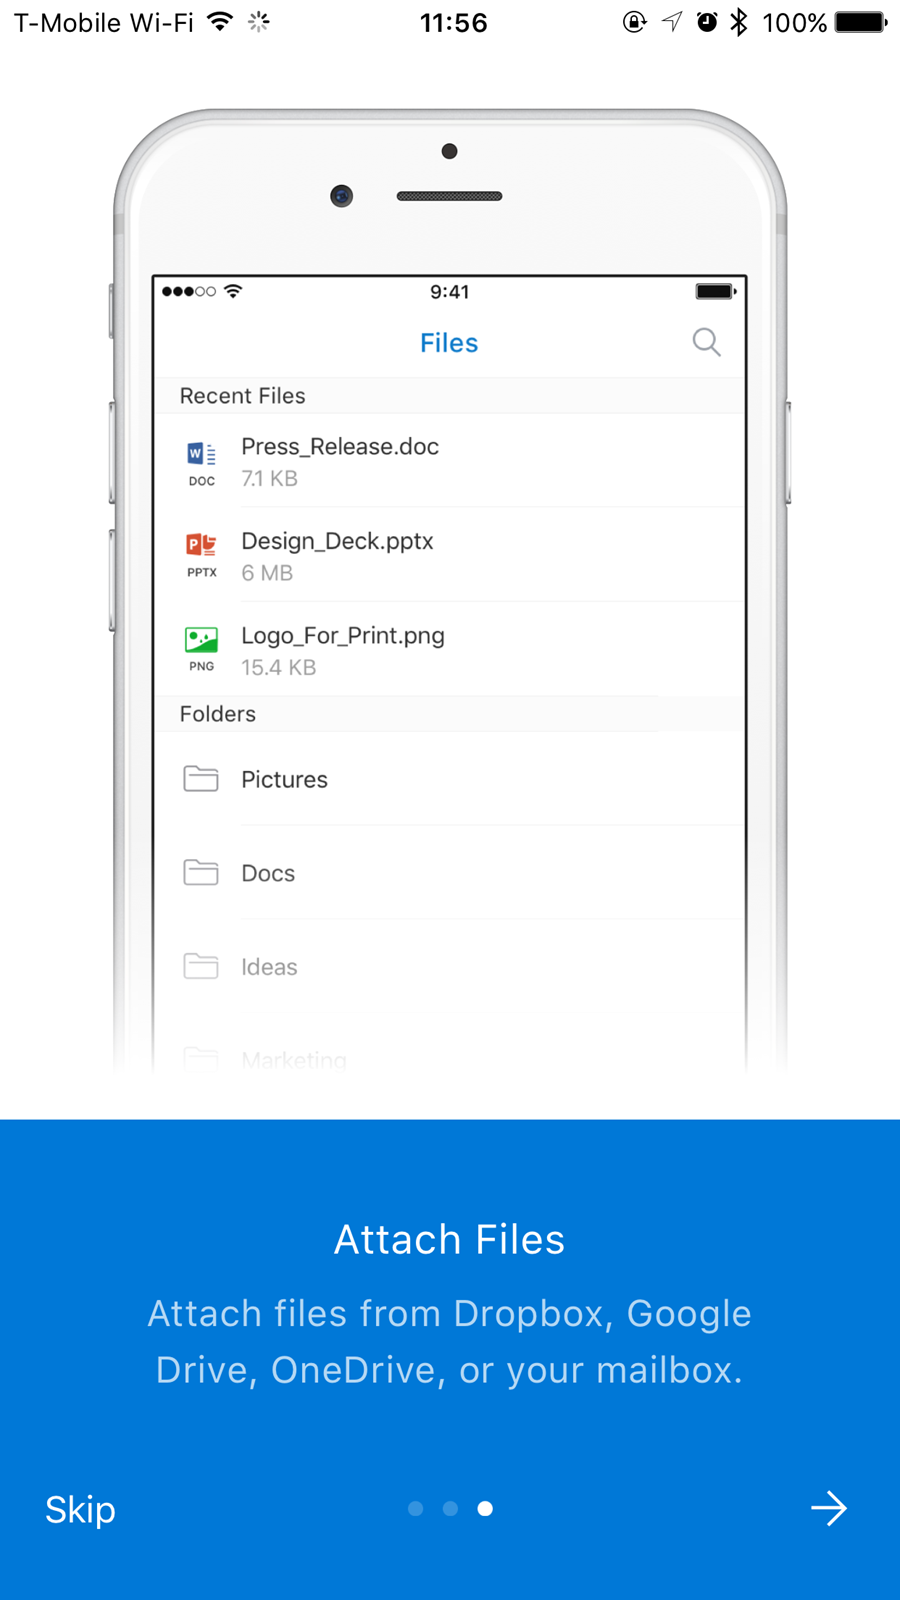 Files screen with listing of files and folders and Attach Files directions